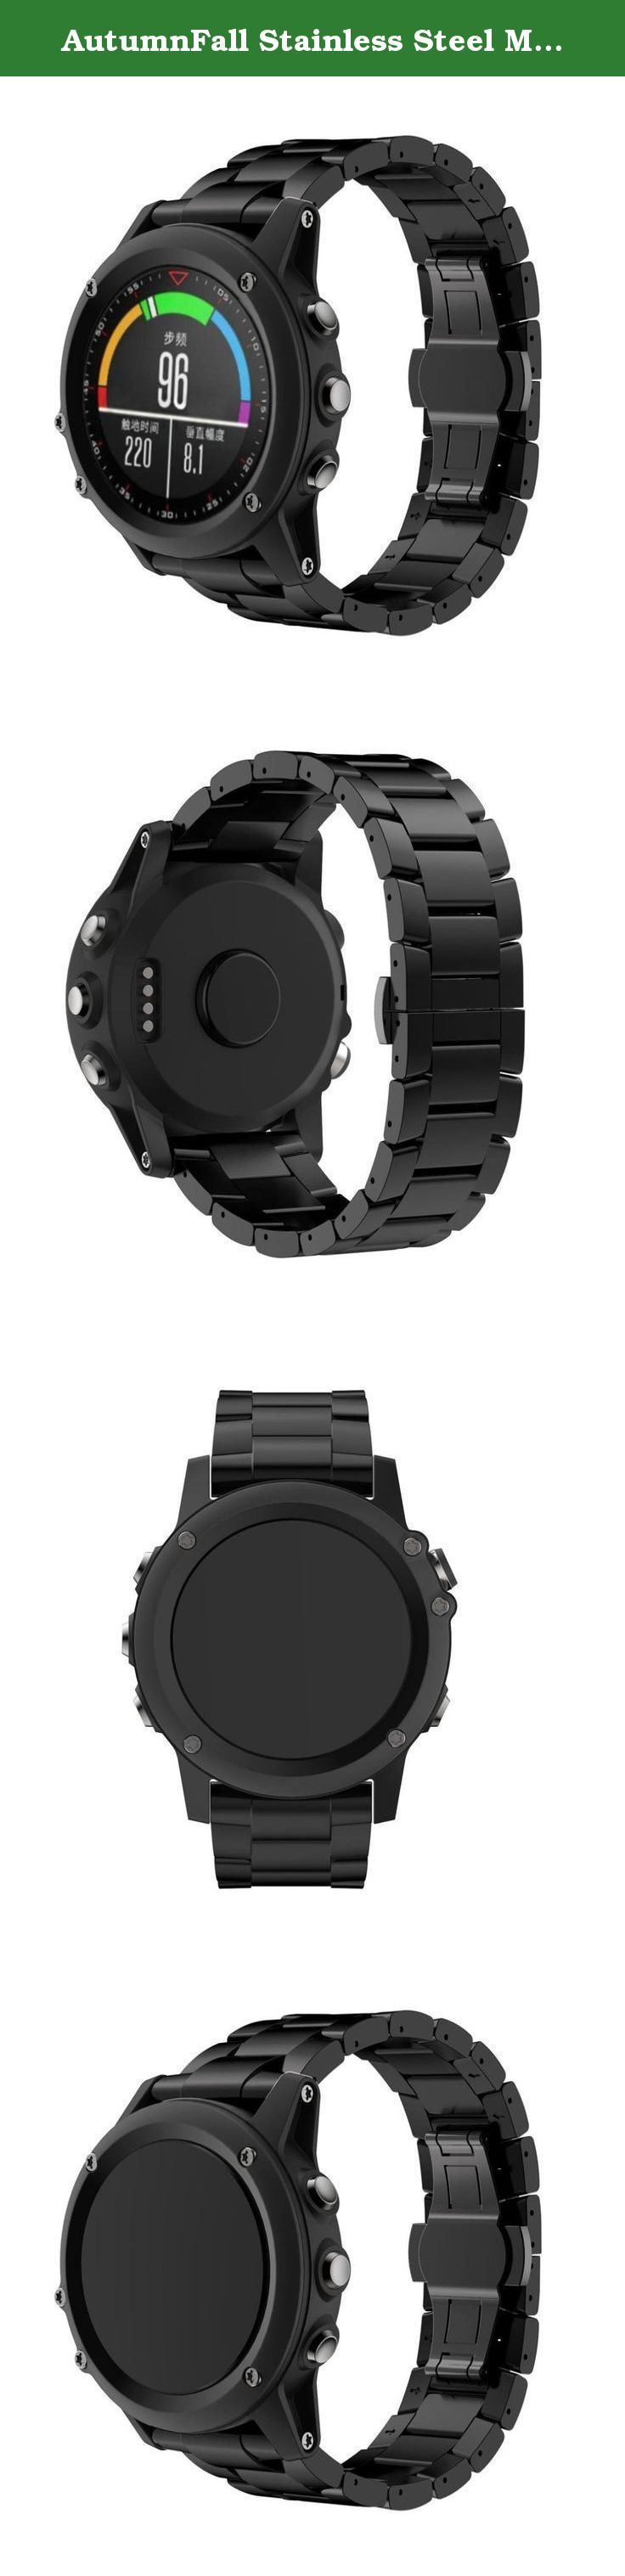 AutumnFall Stainless Steel Metal Replacement Link Bracelet with Double Button Folding Clasp for Fenix 3 / Fenix 3 HR Smart Watch (Black). Personalized Your Garmin Fenix 3 / Fenix 3 HR Smart Watch with this refined replacement stainless steel link wrist band with double button folding clasp. Band comes with Garmin Watch Lugs on both ends, which locks onto Garmin Watch Band Interface precisely and securely. Easy and direct installation and removal. Adopt unique double button folding clasp...